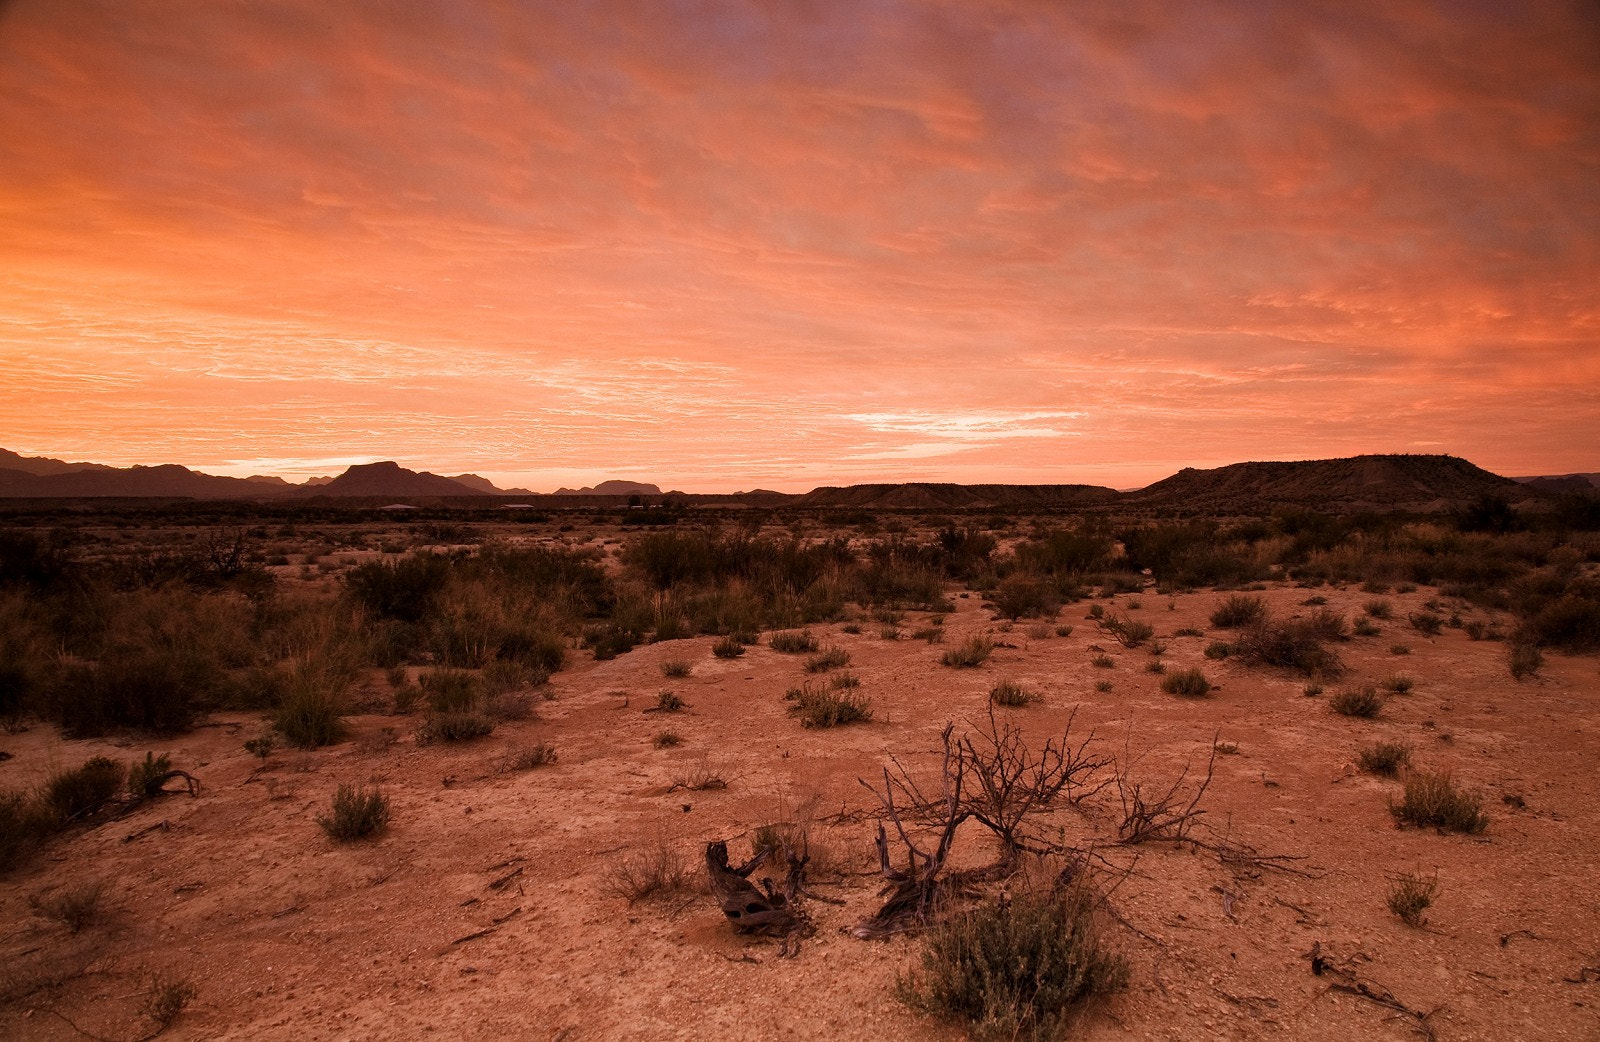 Photograph Texas Desert Sunrise by Stanford  Moore on 500px